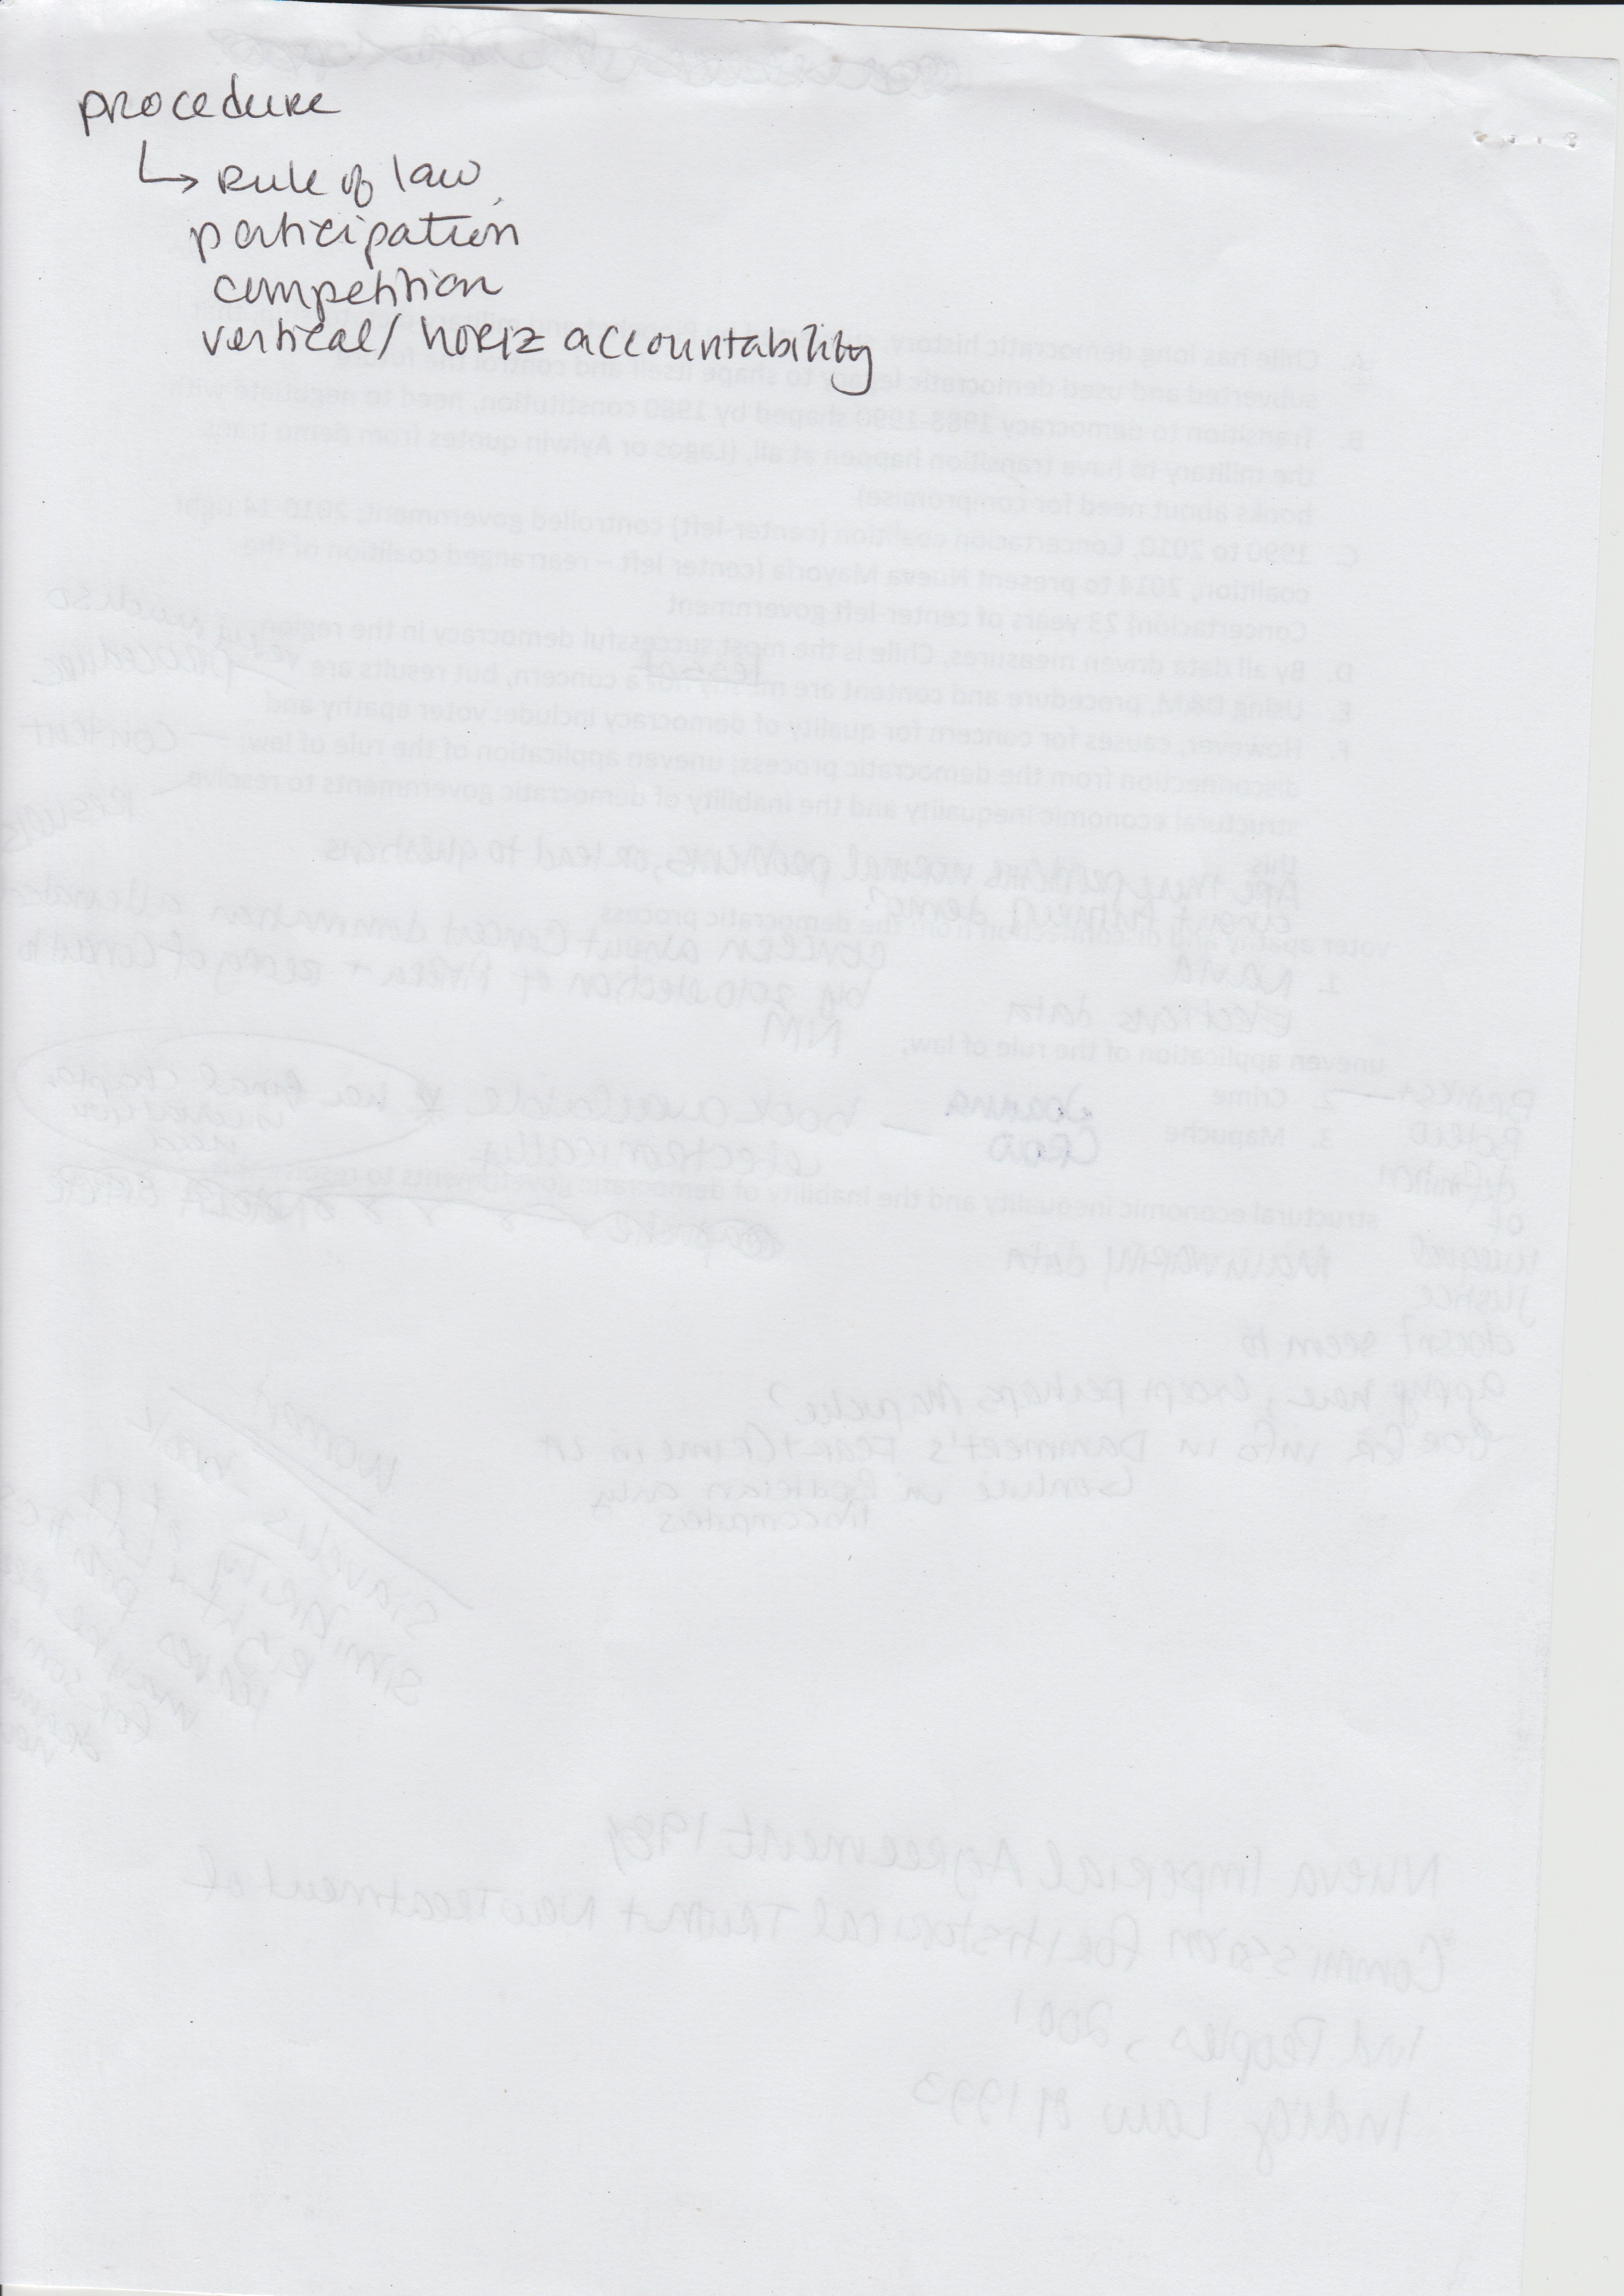 essay outline pages_Page_6.jpg